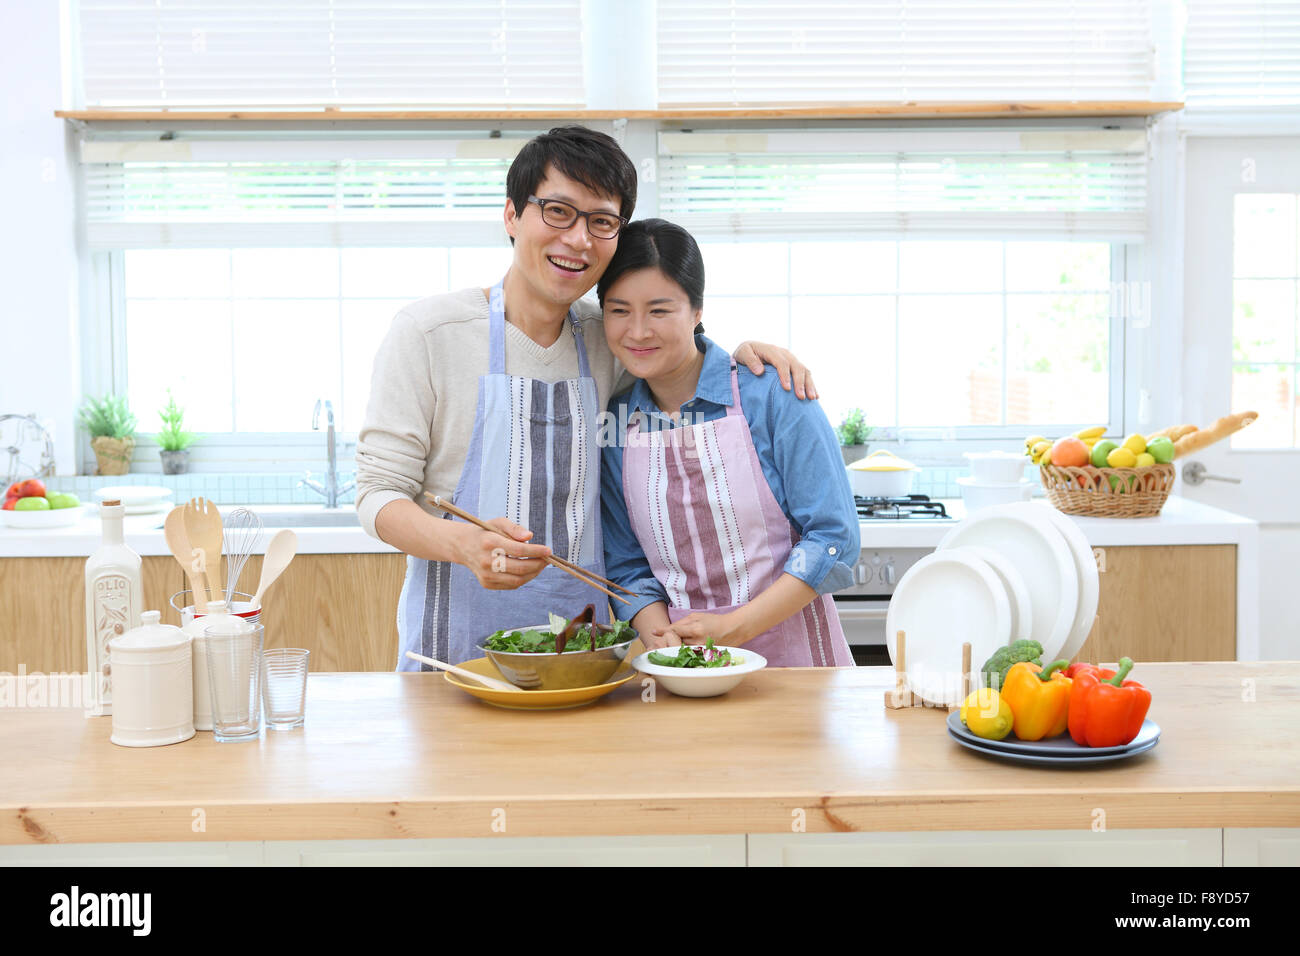 Family in the kitchen - Stock Image